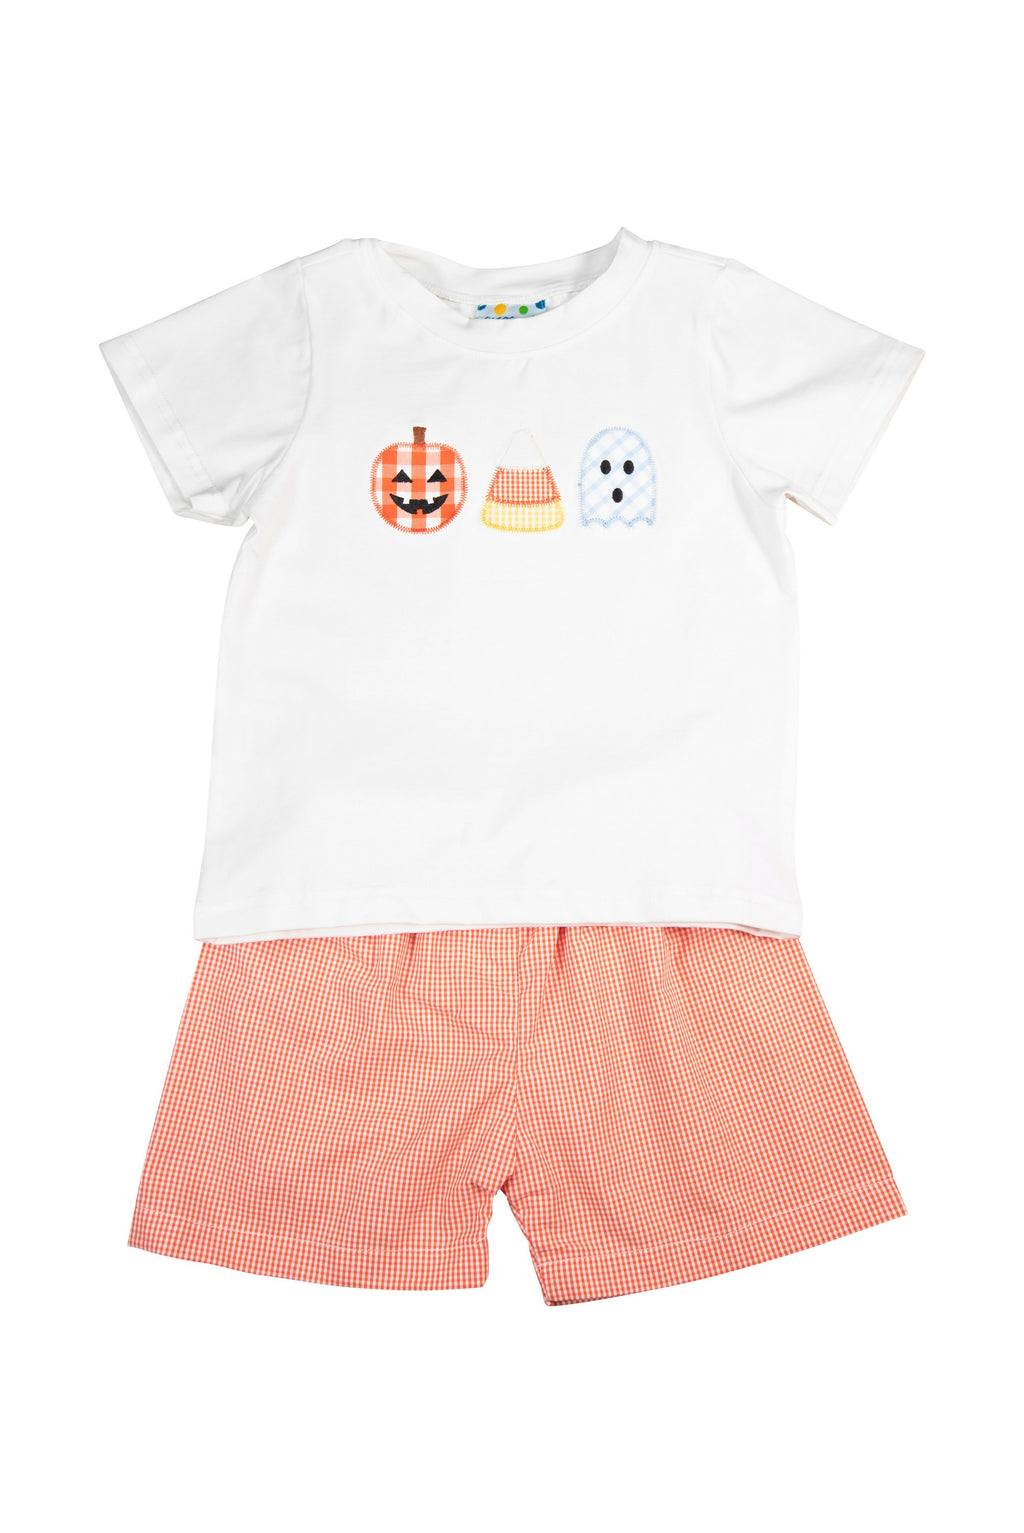 Boys Trick or Treat Shorts Set